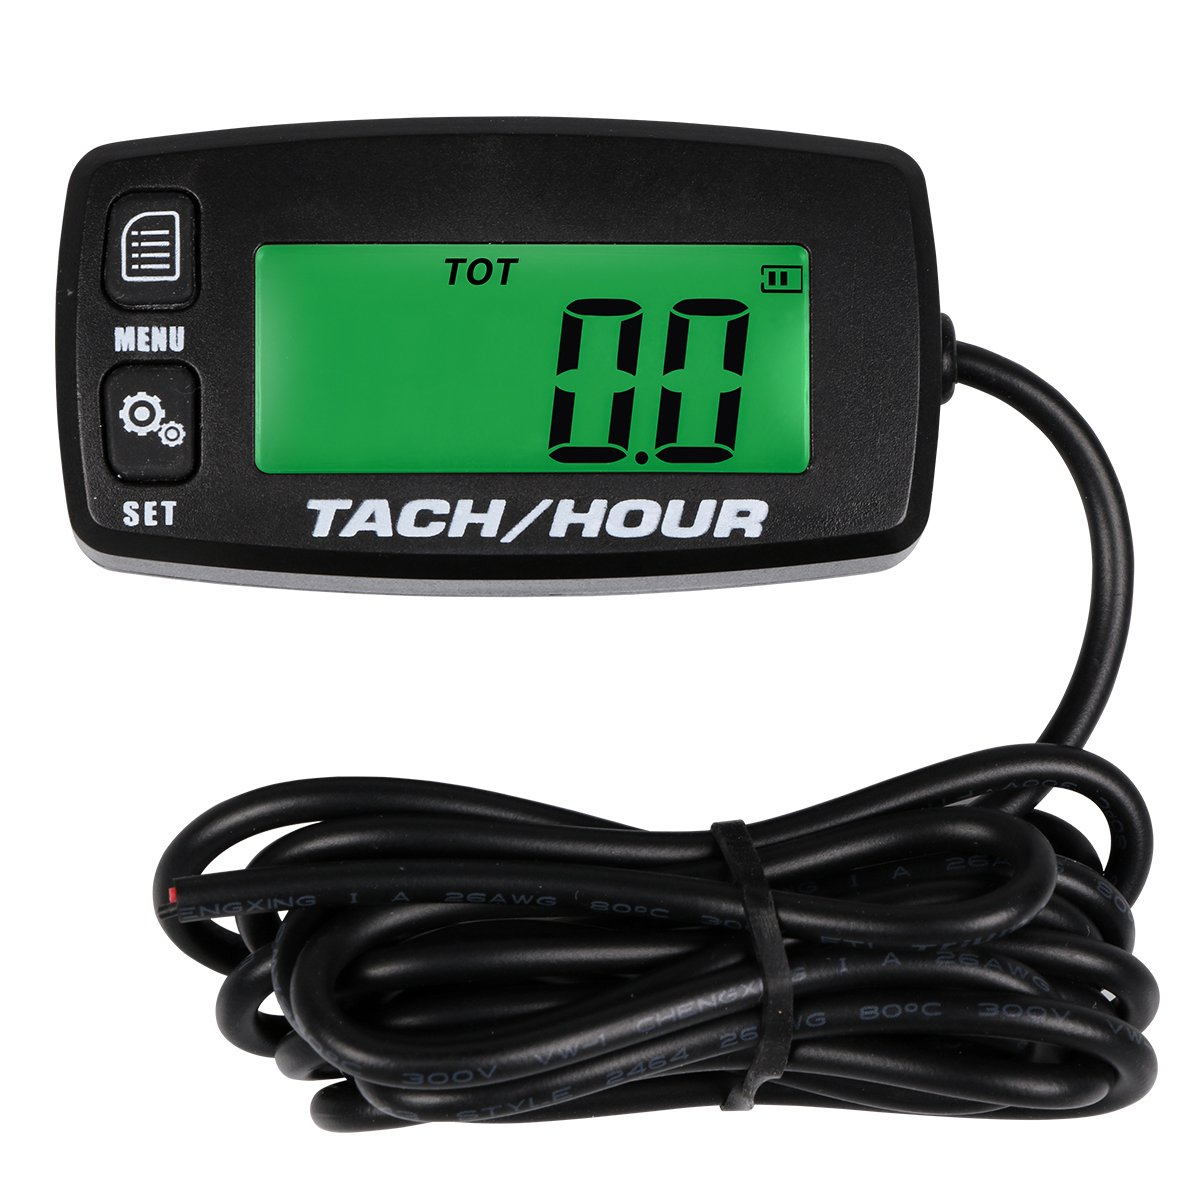 SEARON Backlit Digital Tach Hour Meter Tachometer for Small Engine Boat Generator Lawn Mower Motorcycle Motocross ATV Snowmobile UTV